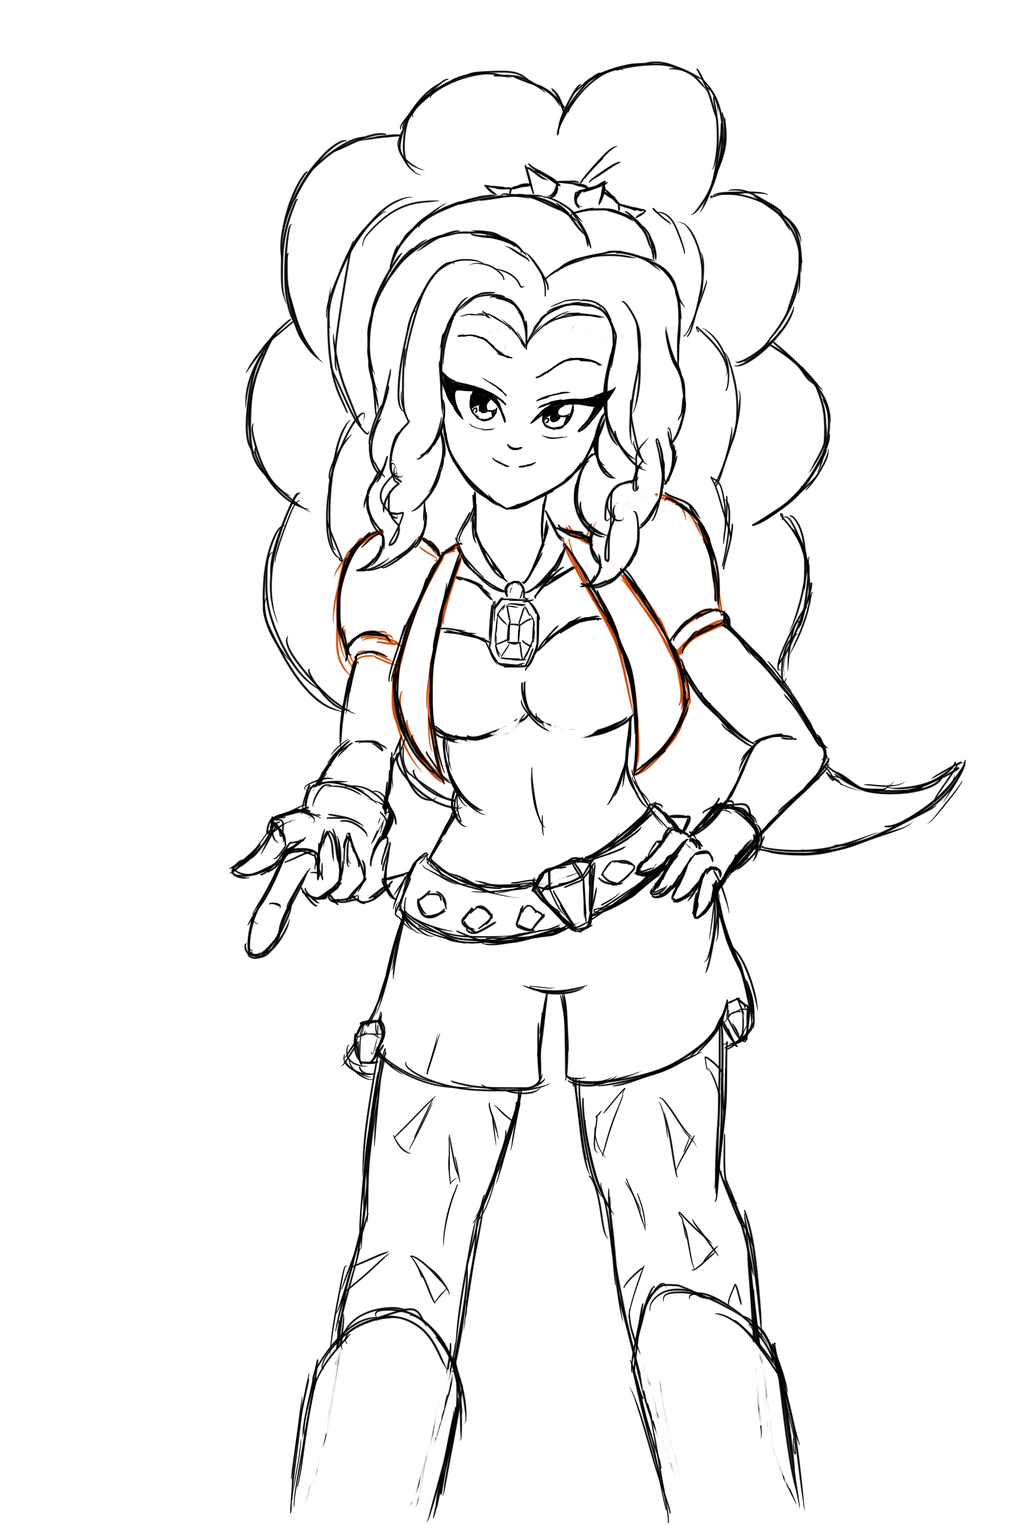 mlp adagio dazzle coloring pages - photo#8